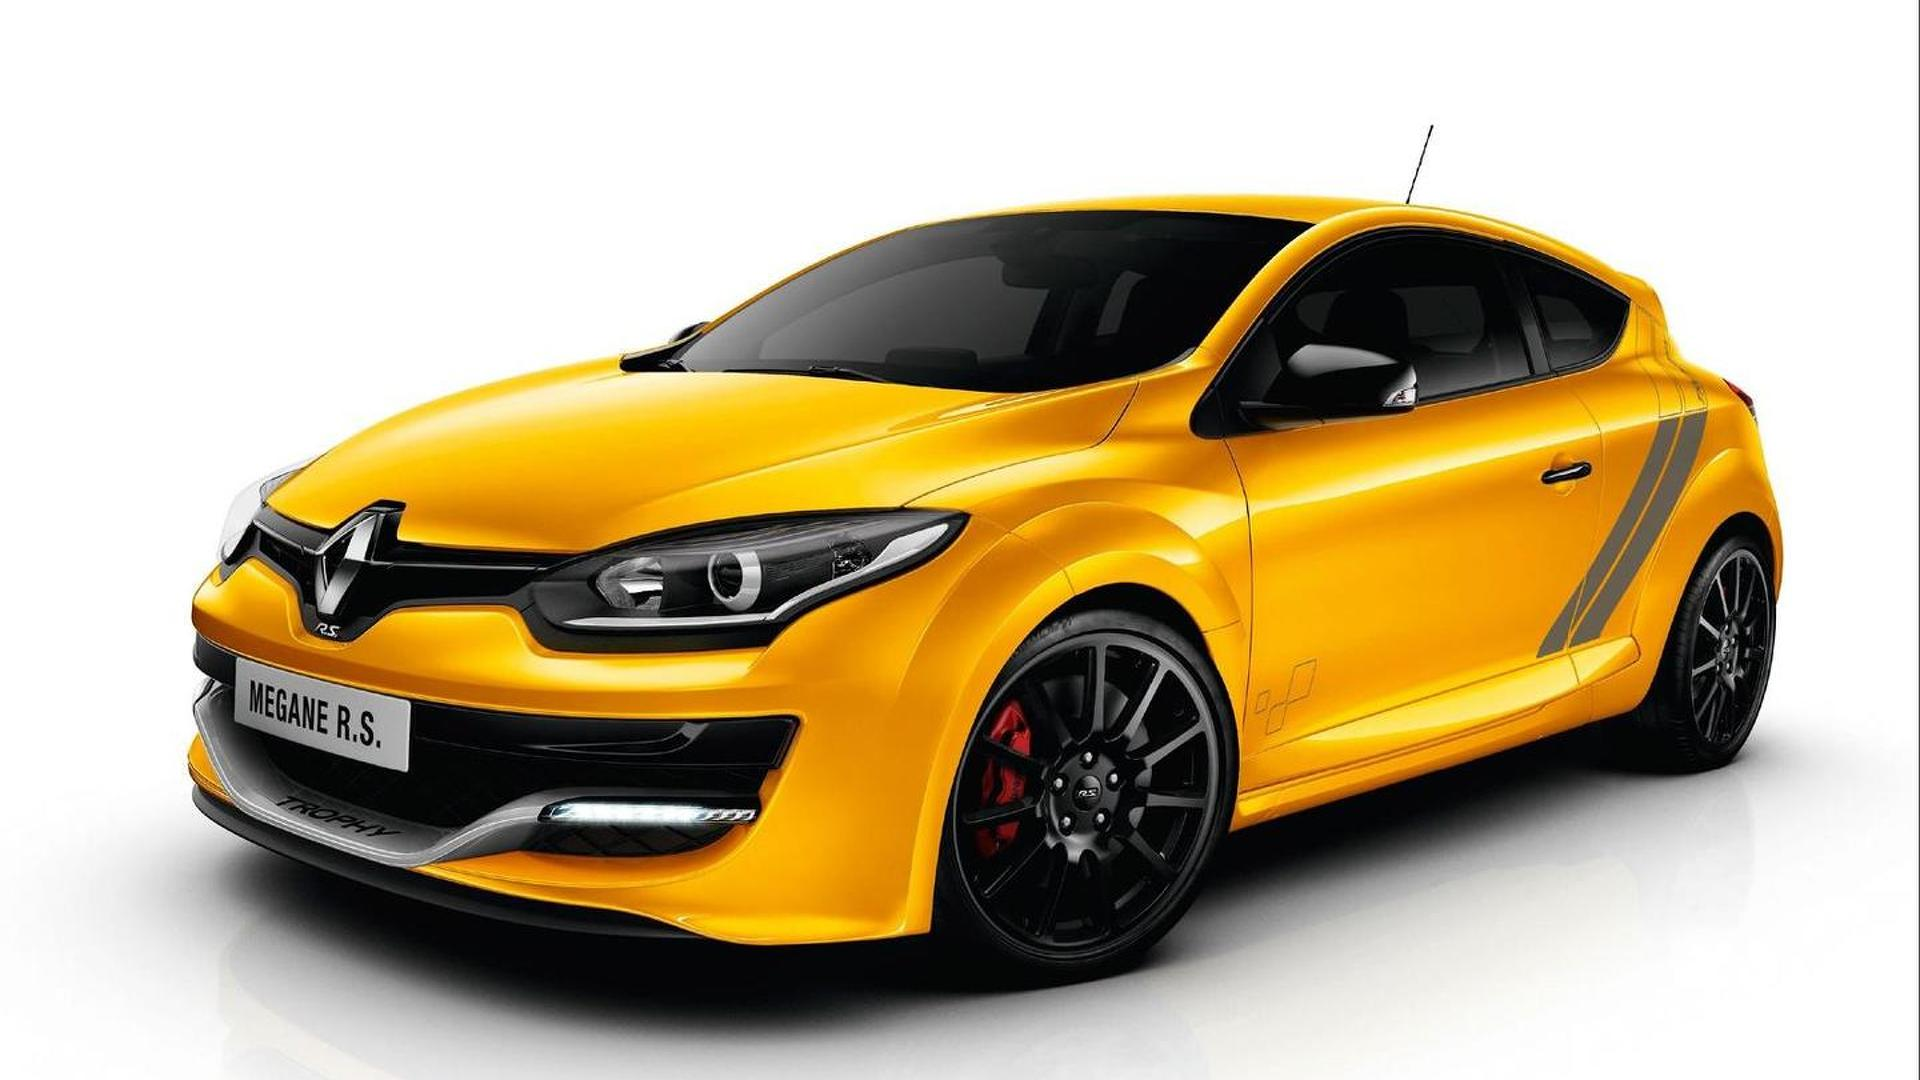 Megane Renaultsport 275 Trophy unleashed, aims to claim FWD Nurburgring crown